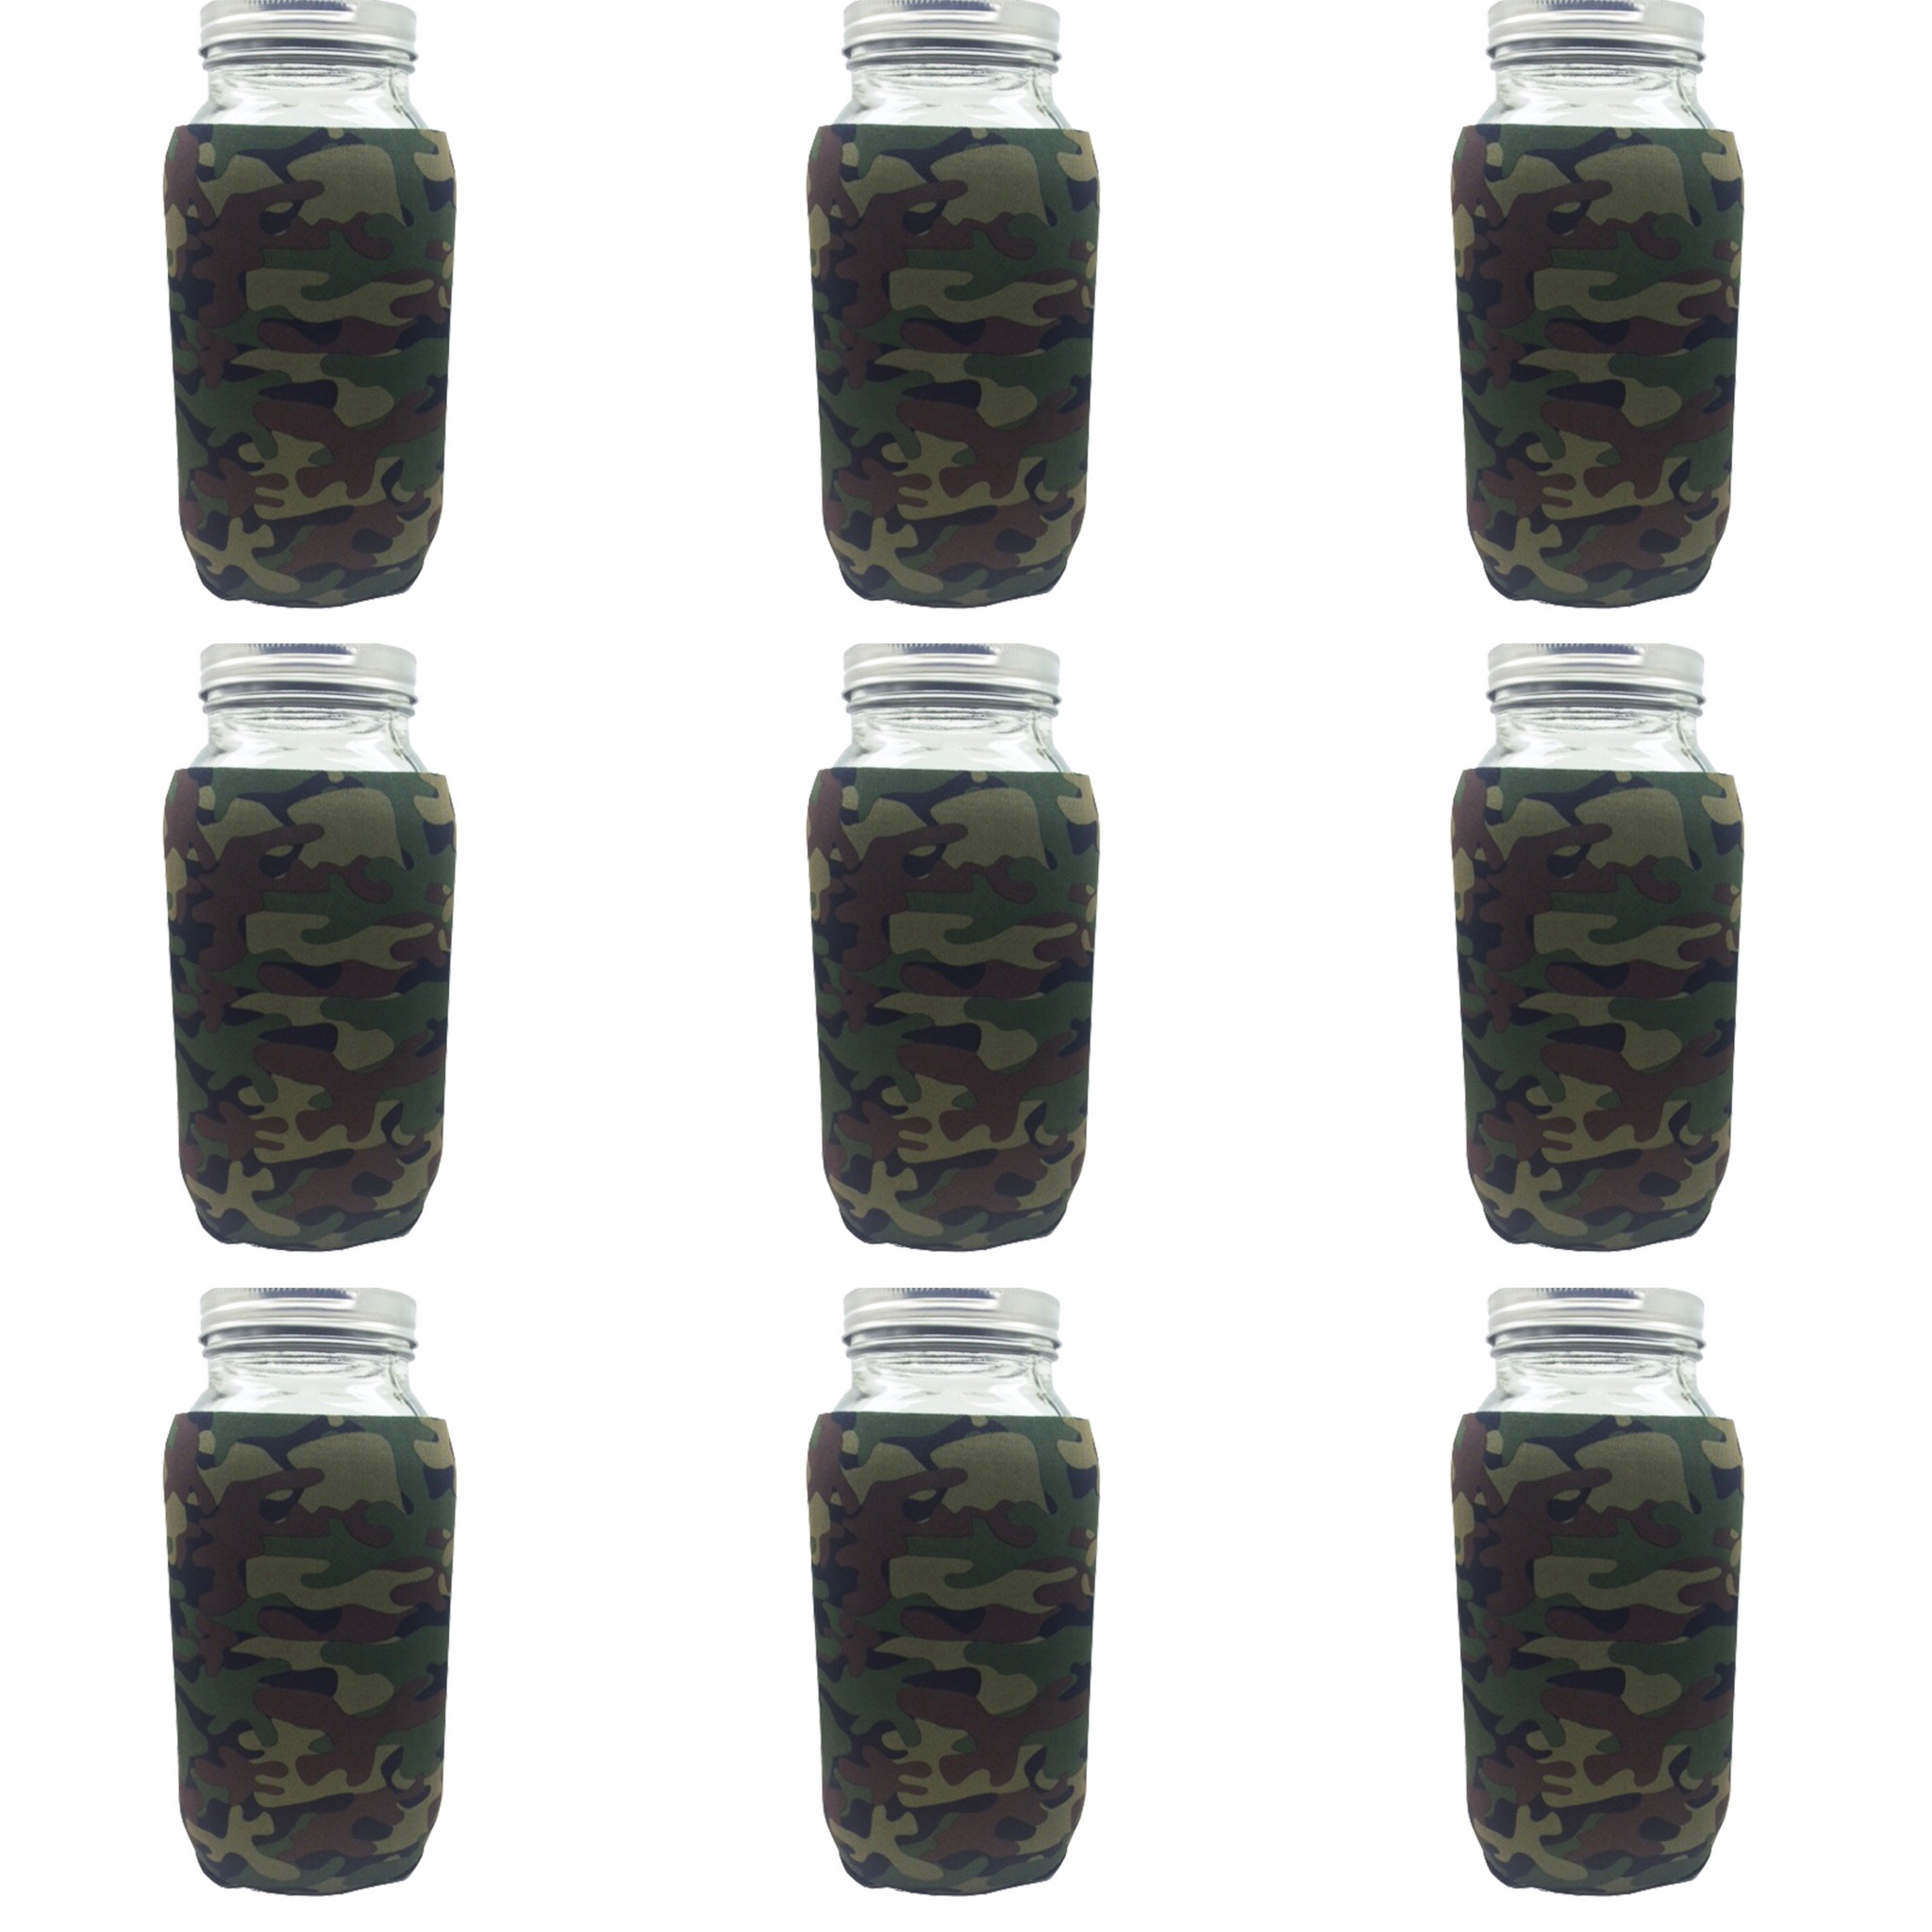 9 64oz basic camo Jar-Z's